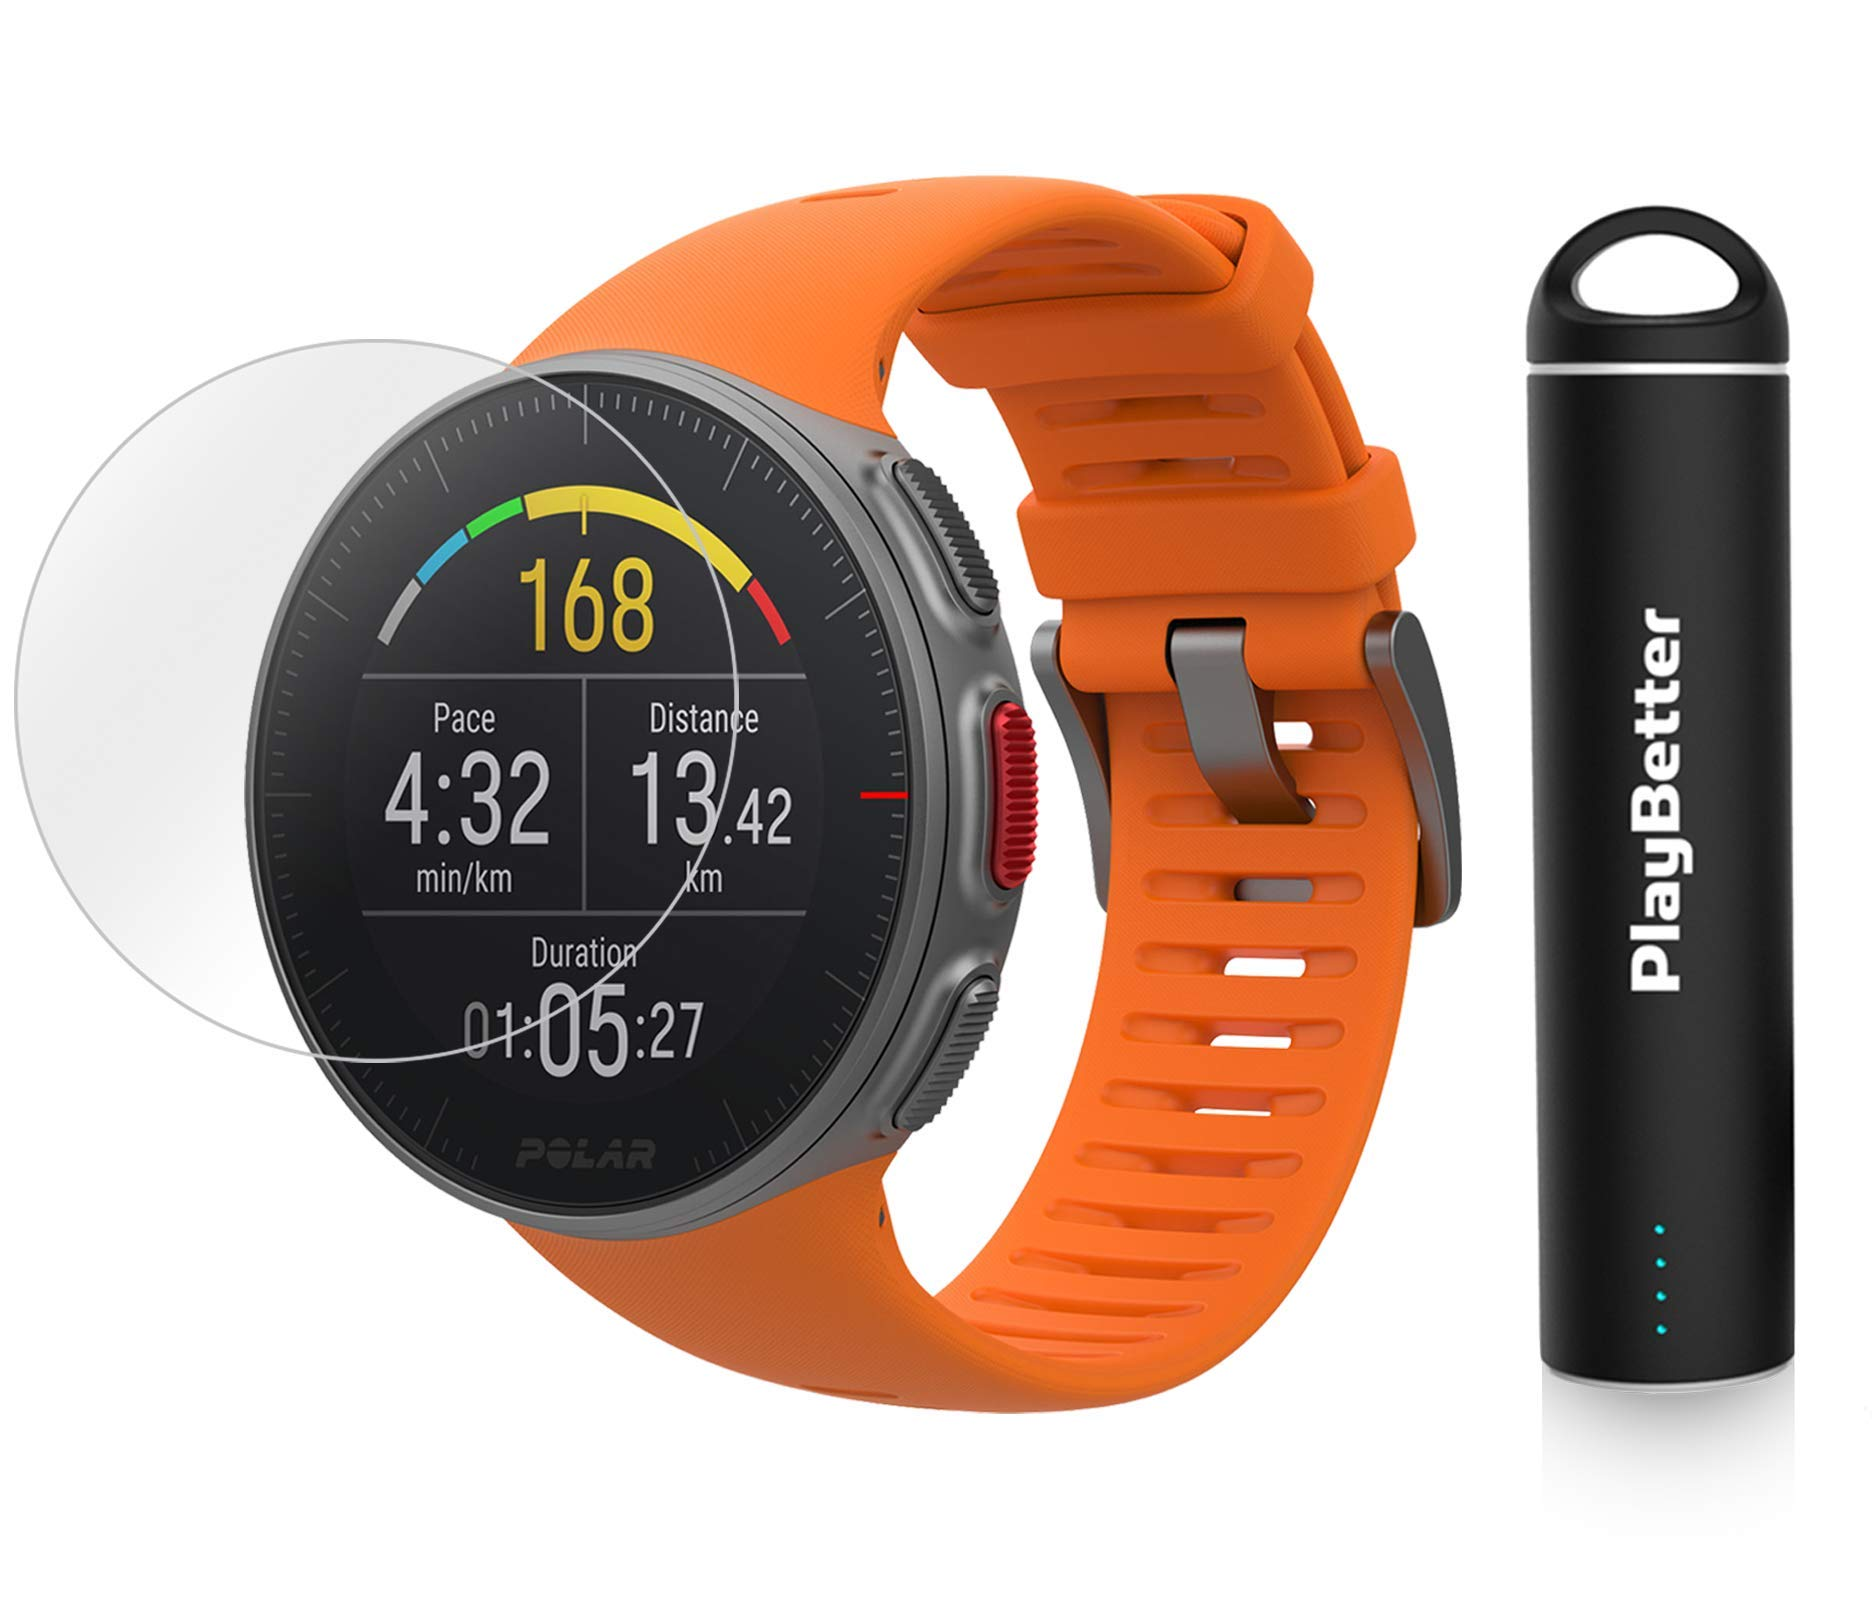 PlayBetter Polar Vantage V Pro Multisport Watch (Orange) Power Bundle Portable Charger & Screen Protectors | GPS & Barometer | Heart Rate by PlayBetter (Image #1)